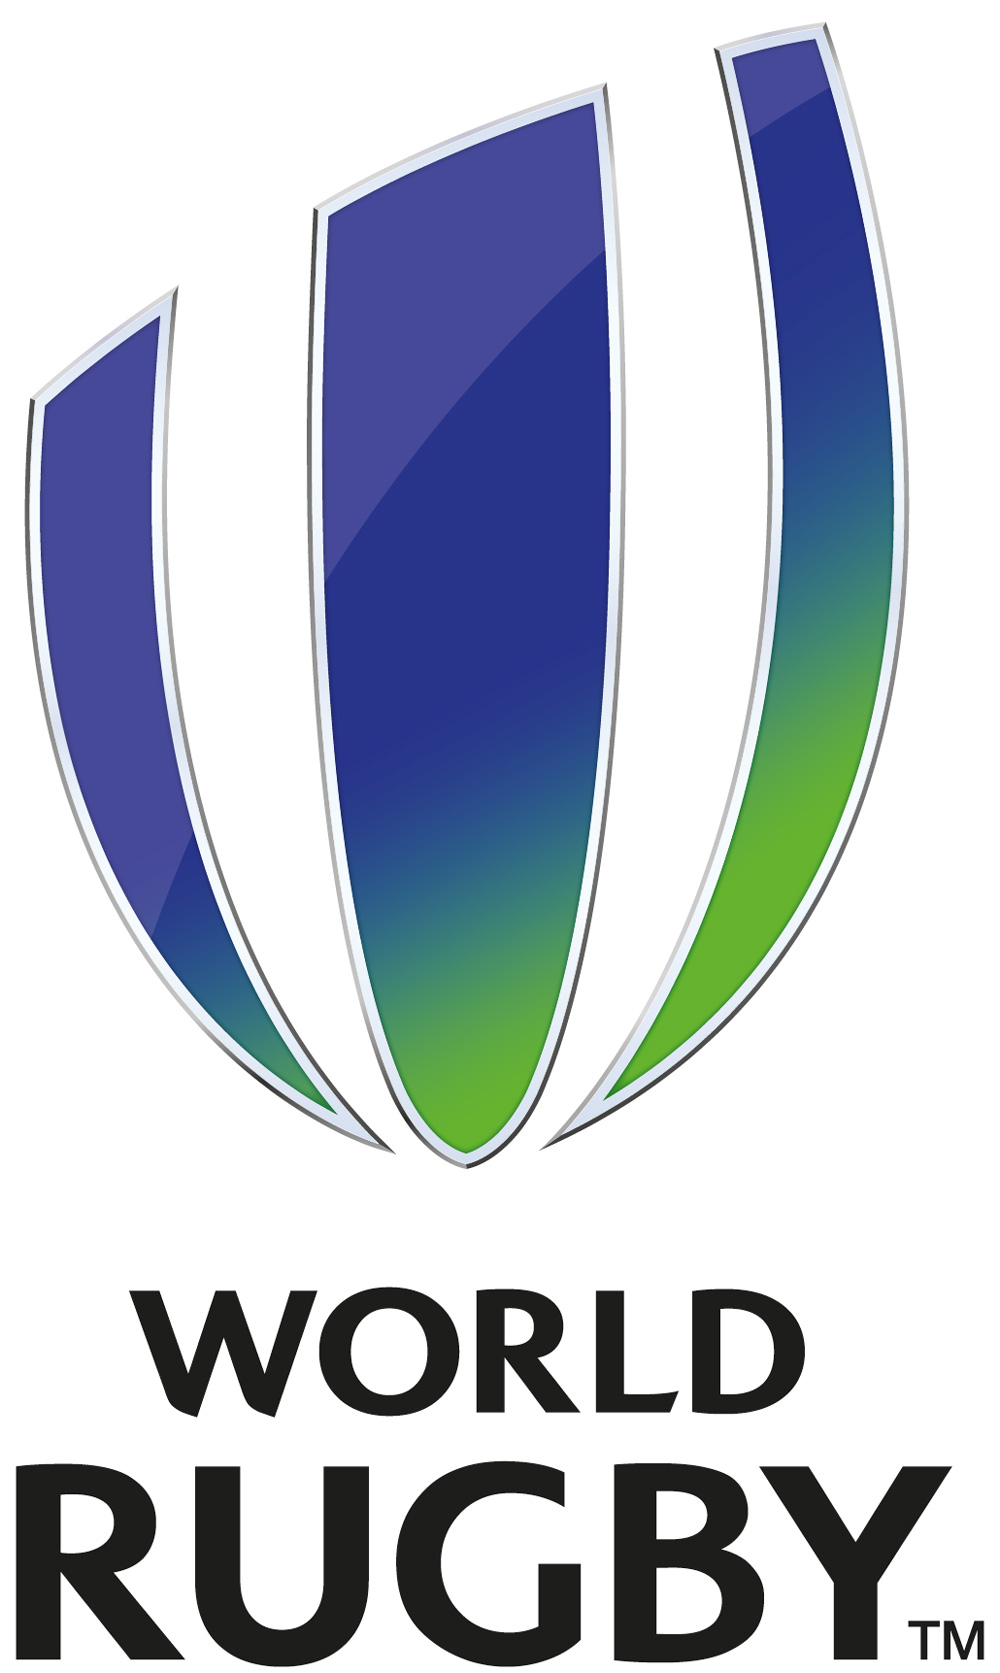 Brand New: New Name and Logo for World Rugby by Futurebrand.